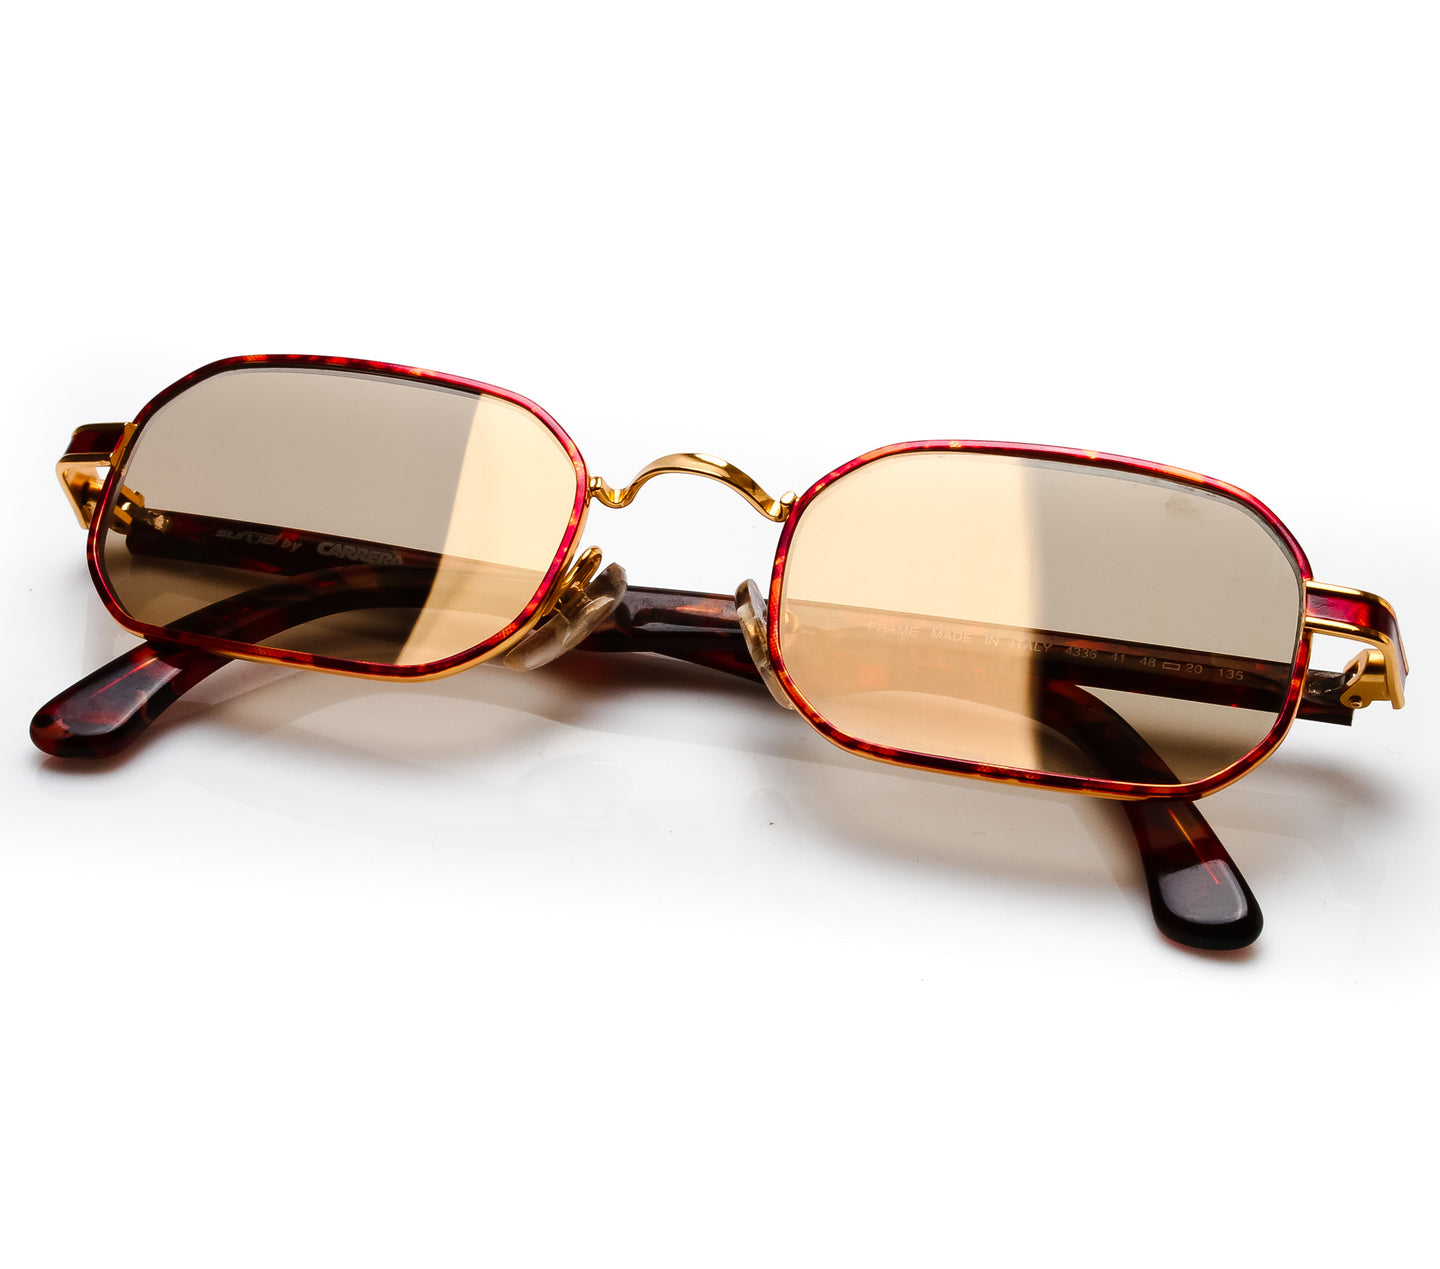 VF by Vintage Frames Remix Carrera (Gold Dust Flash Gold Flat Lens) thumbnail, VF by Vintage Frames , glasses frames, eyeglasses online, eyeglass frames, mens glasses, womens glasses, buy glasses online, designer eyeglasses, vintage sunglasses, retro sunglasses, vintage glasses, sunglass, eyeglass, glasses, lens, vintage frames company, vf